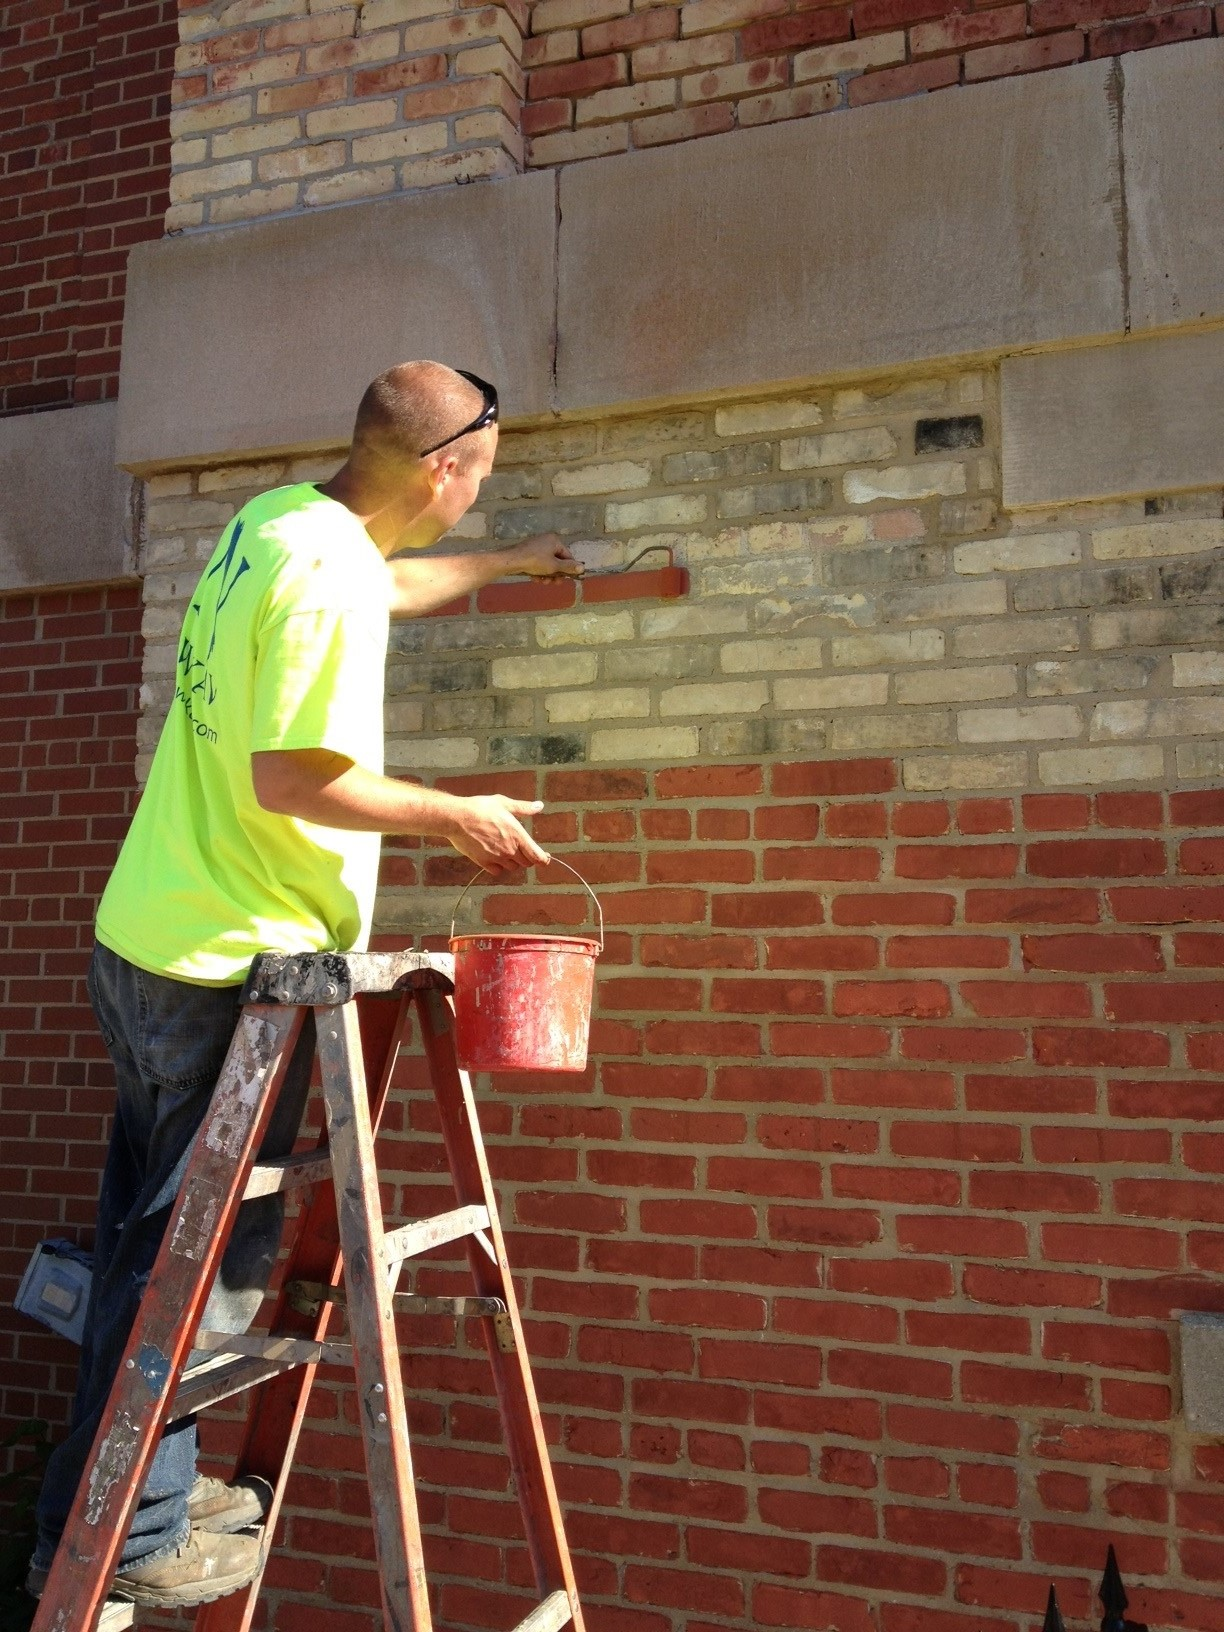 Restoration Projects | The Old McHenry County Courthouse ...